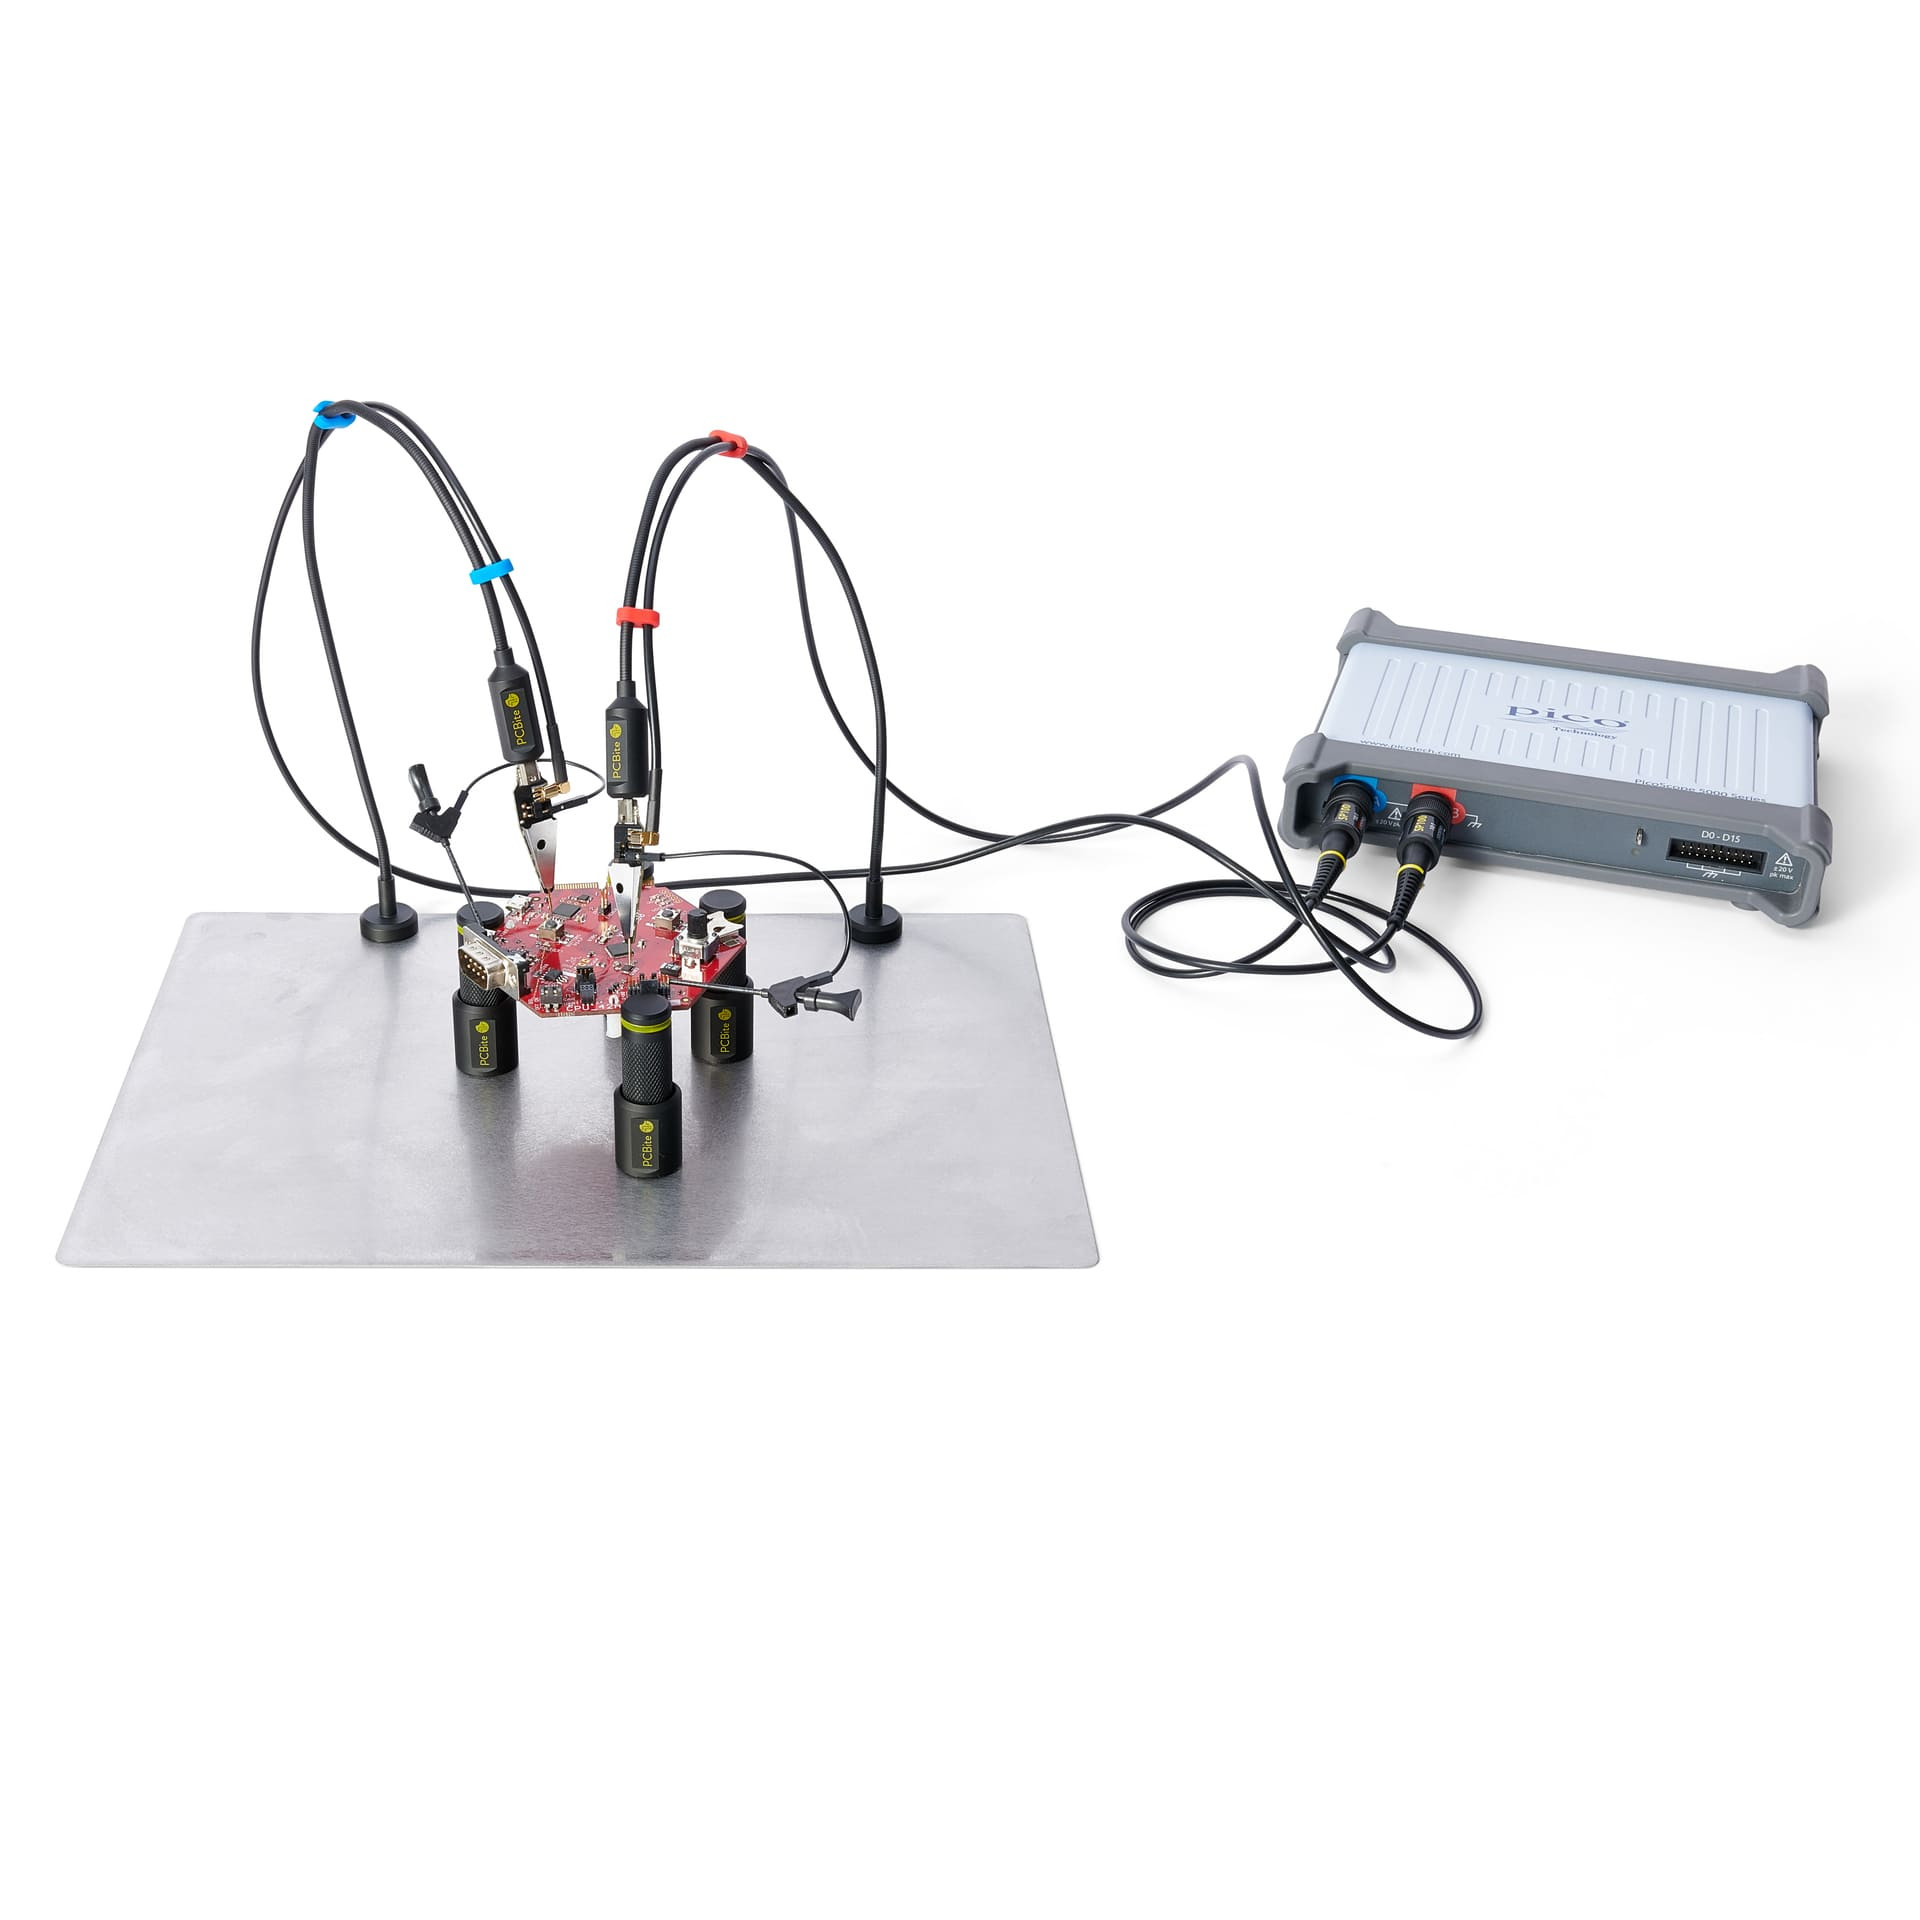 PCBite kit with 2x SP100 100 Mhz hands-free oscilloscope probes